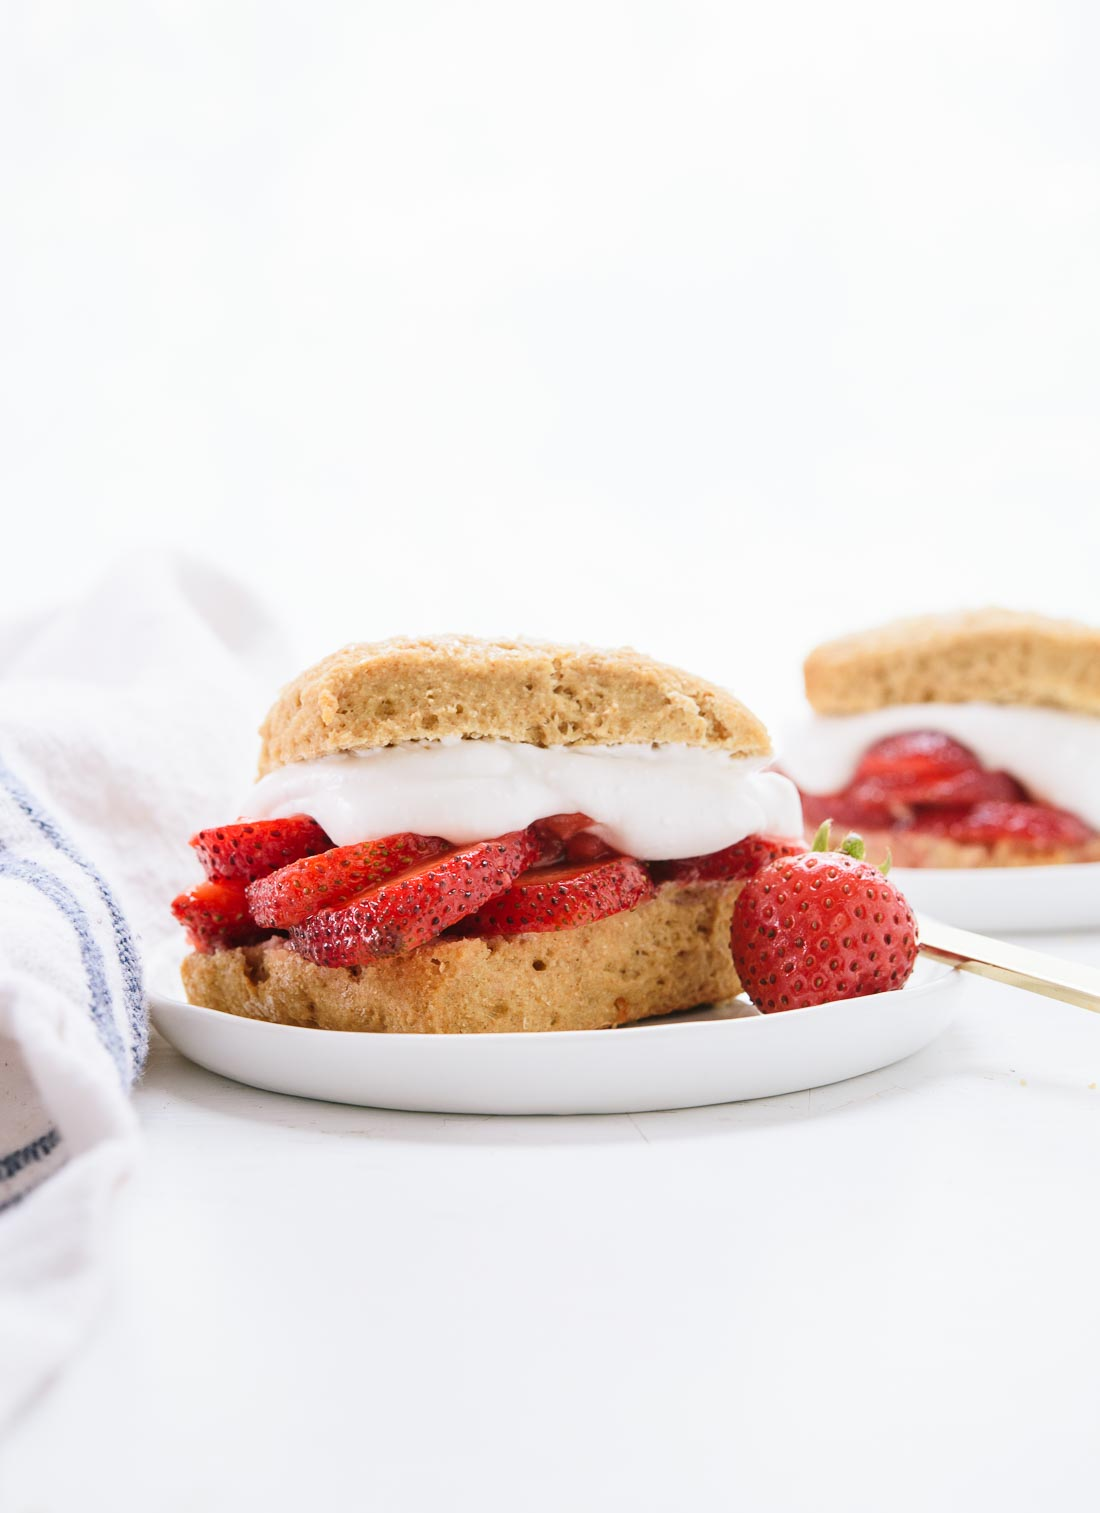 This healthier strawberry shortcake recipe is naturally sweetened, 100% whole grain and made with coconut milk instead of heavy cream! It's delicious and easy to make, too. cookieandkate.com